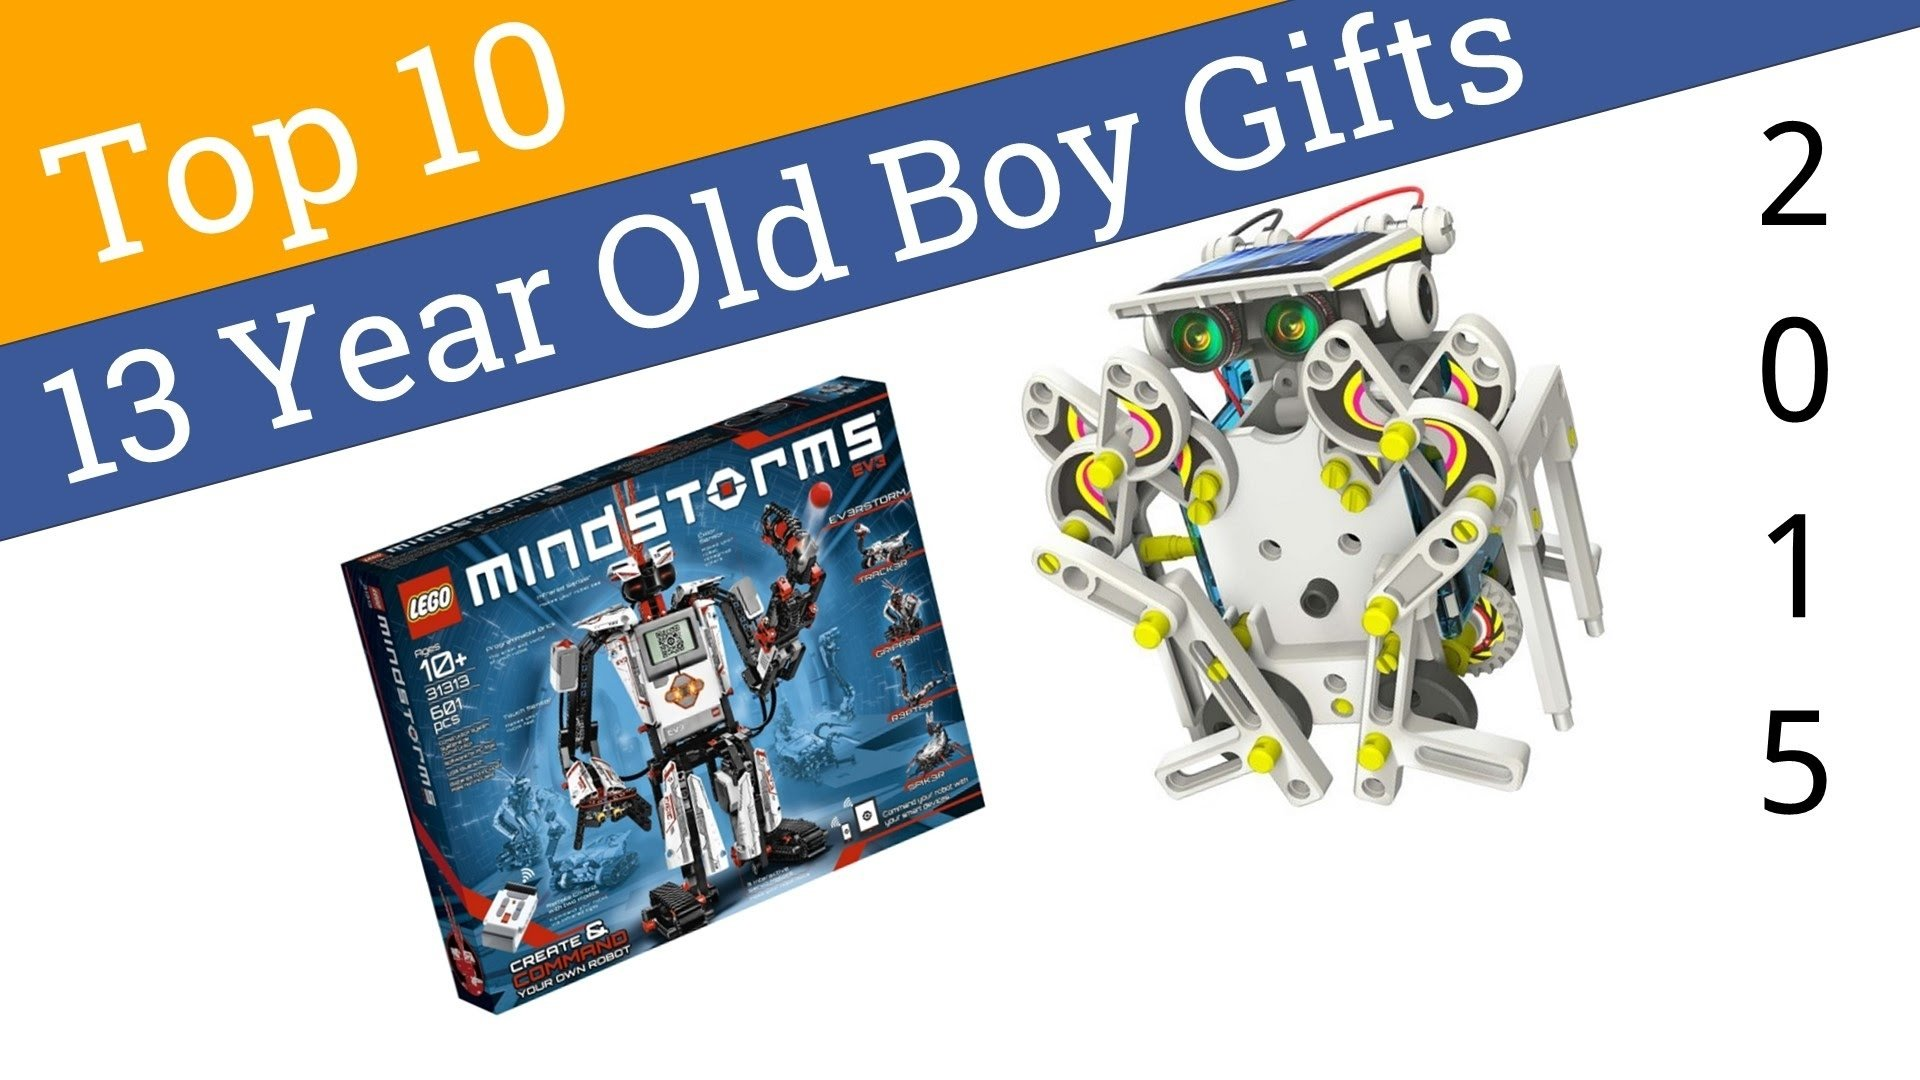 10 Beautiful 13 Year Old Birthday Gift Ideas Best Boy Gifts 2015